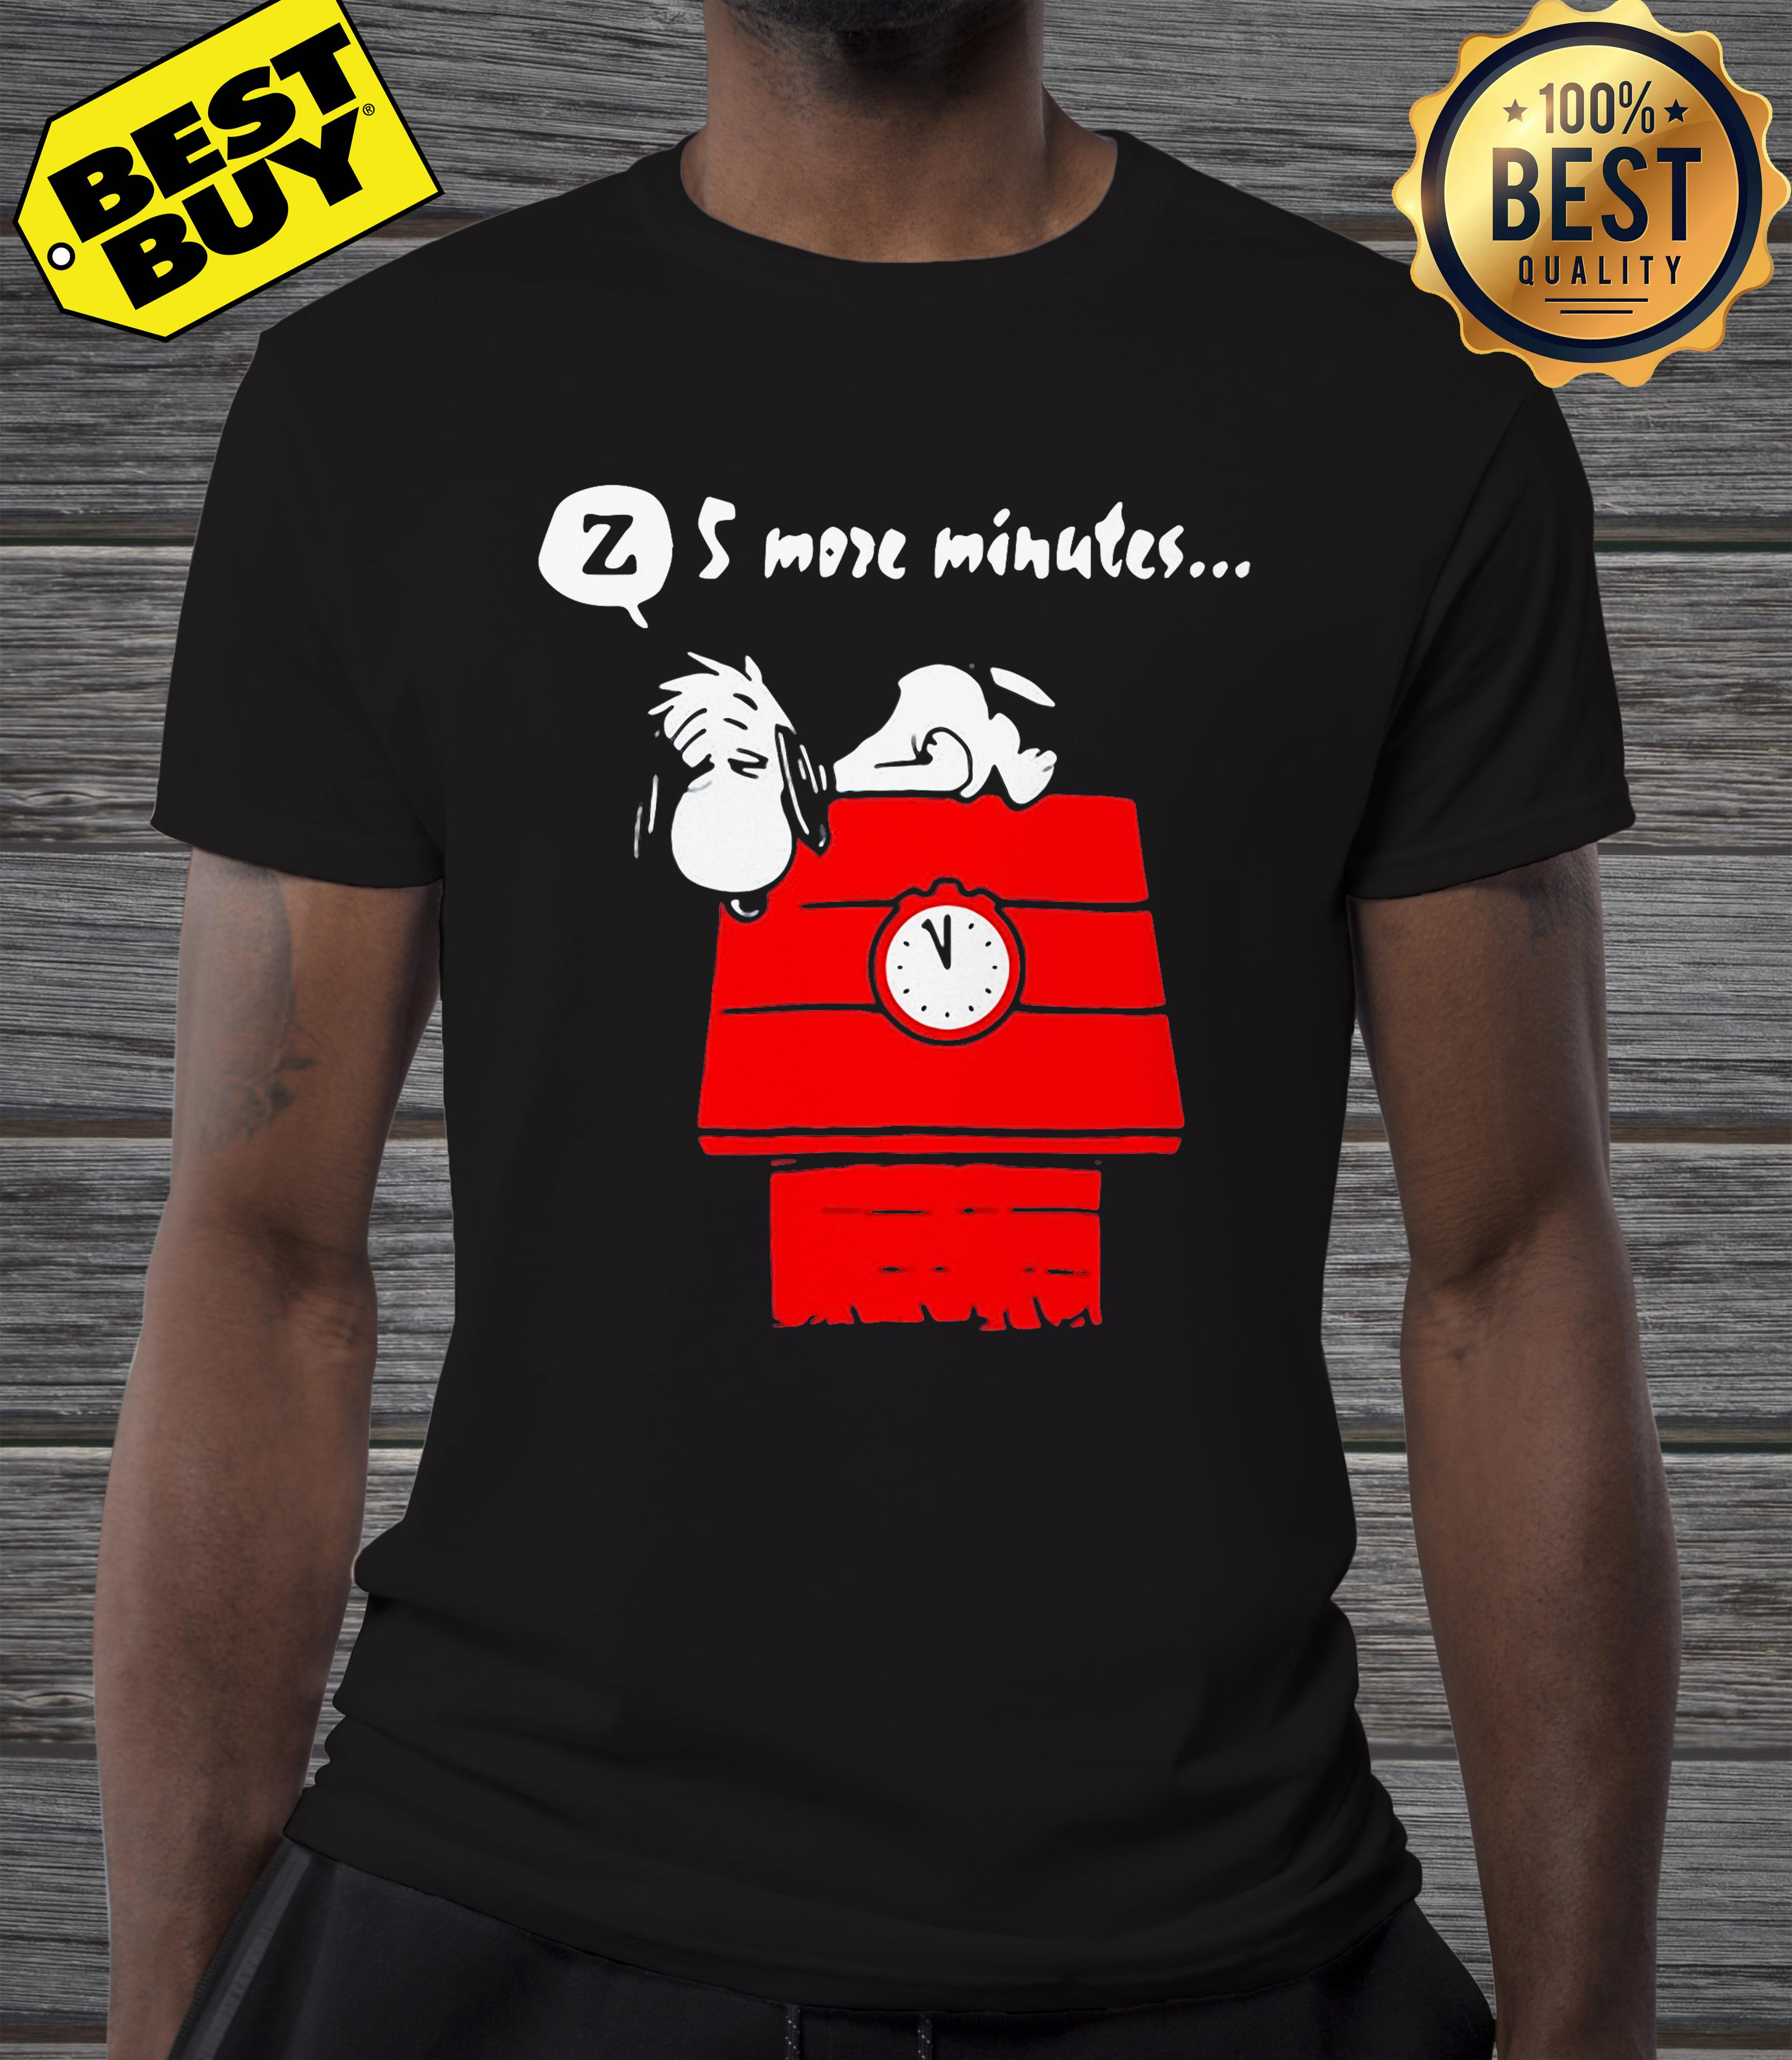 5 more minutes snoopy Sleep and the Red Baron v-neck